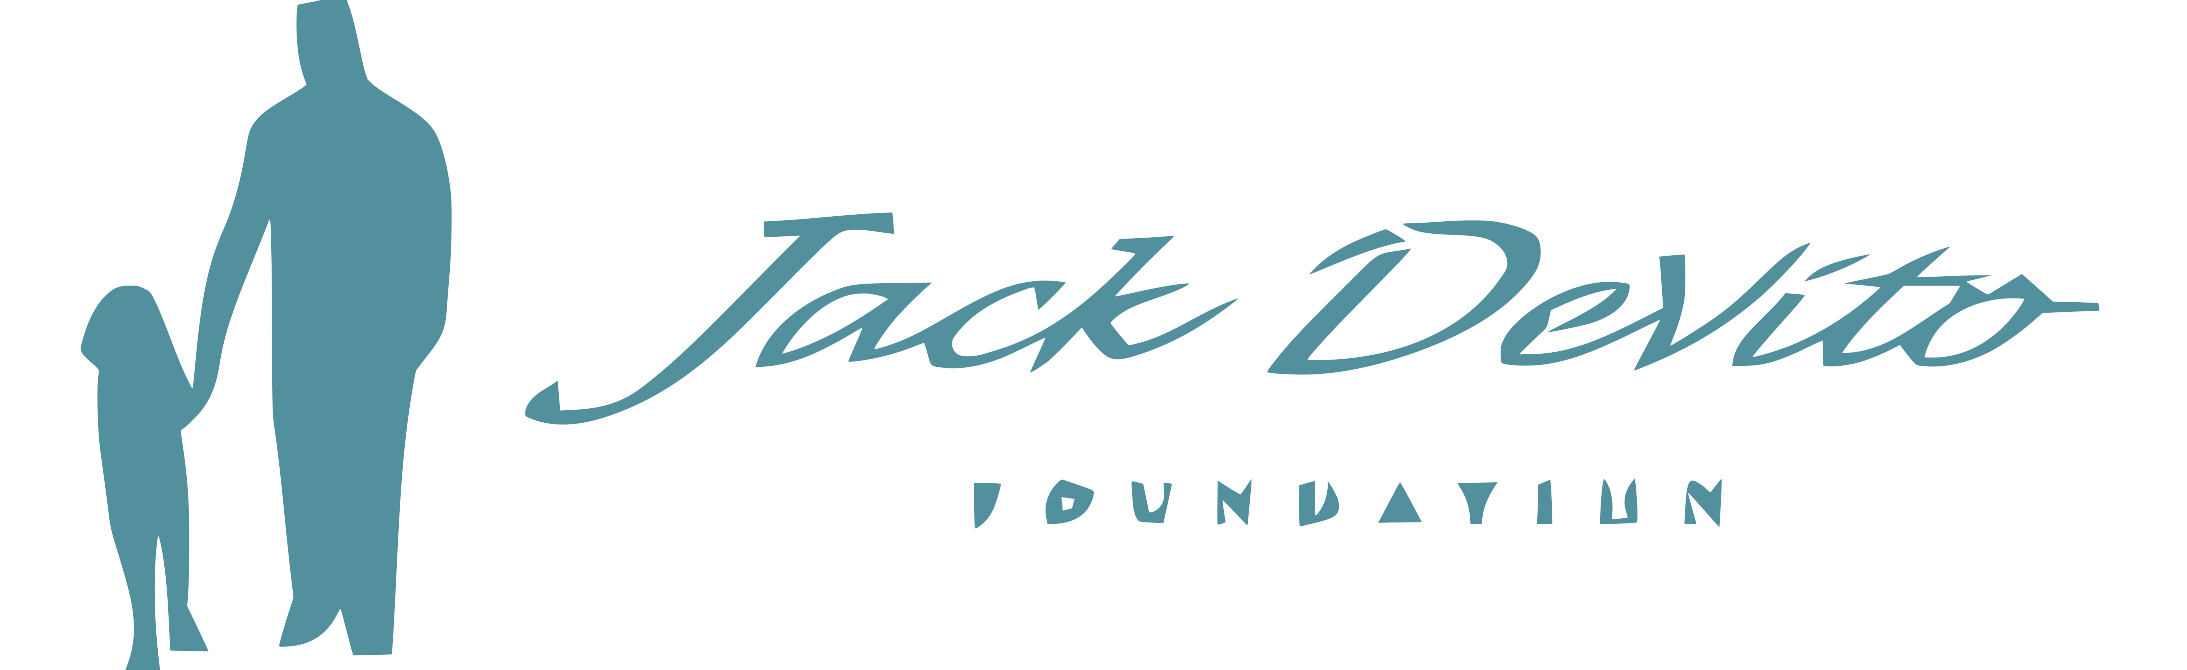 Jack Devito Foundation - Jack Devito Foundation